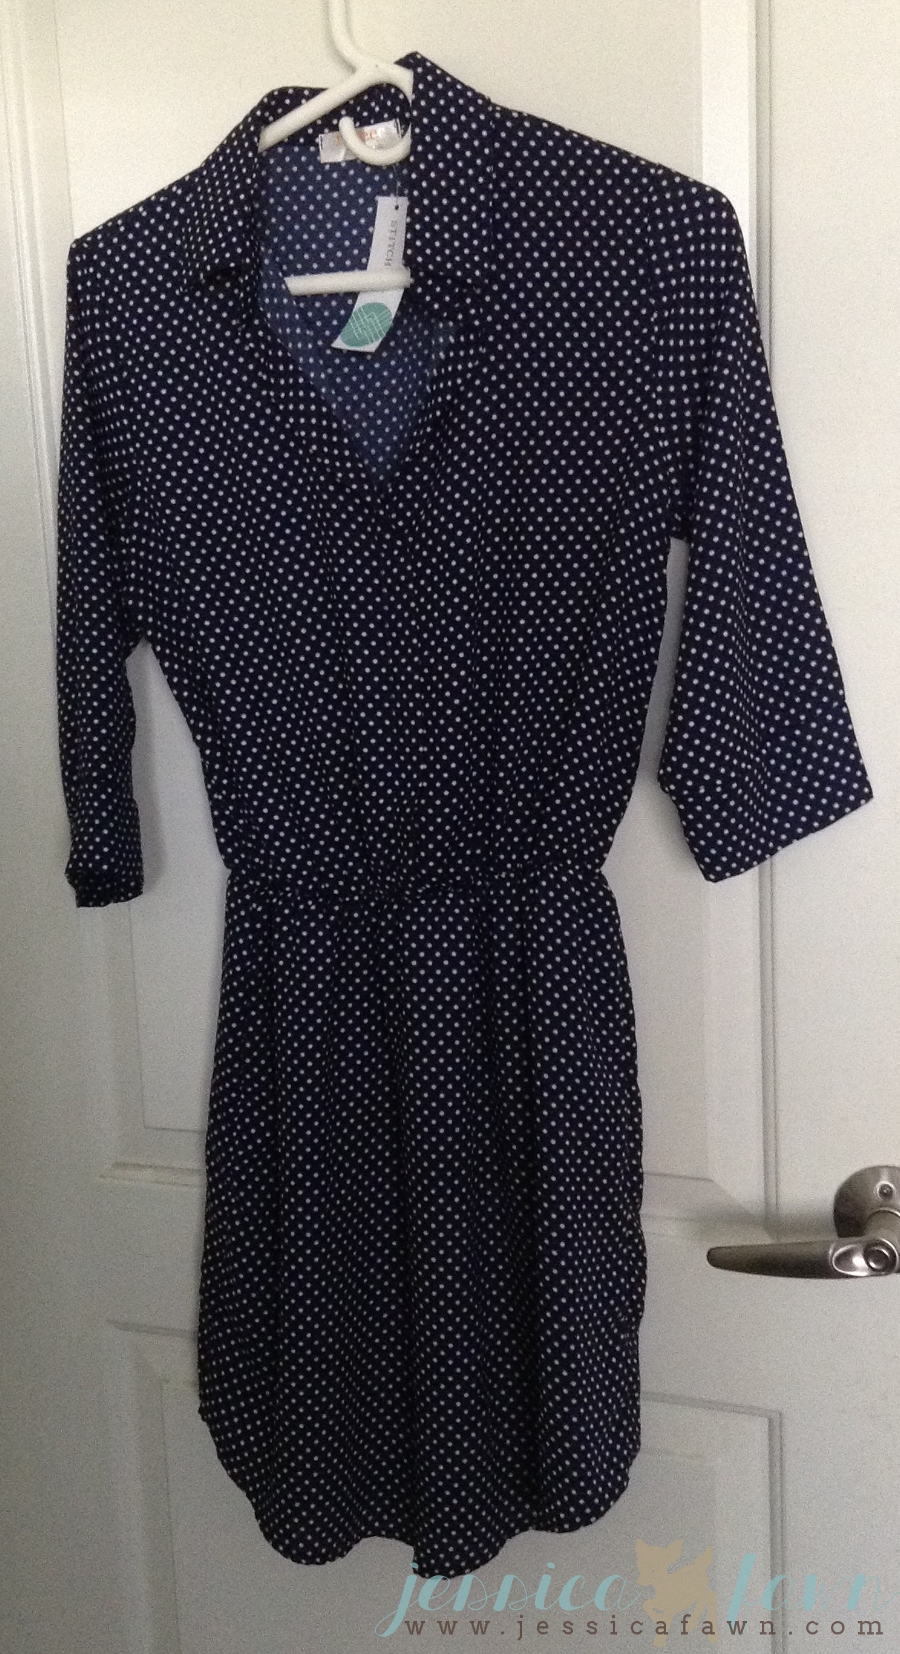 Renee C Alexus 3/4 Sleeve Polka Dot Collared Shirt Dress | JessicaFawn.com